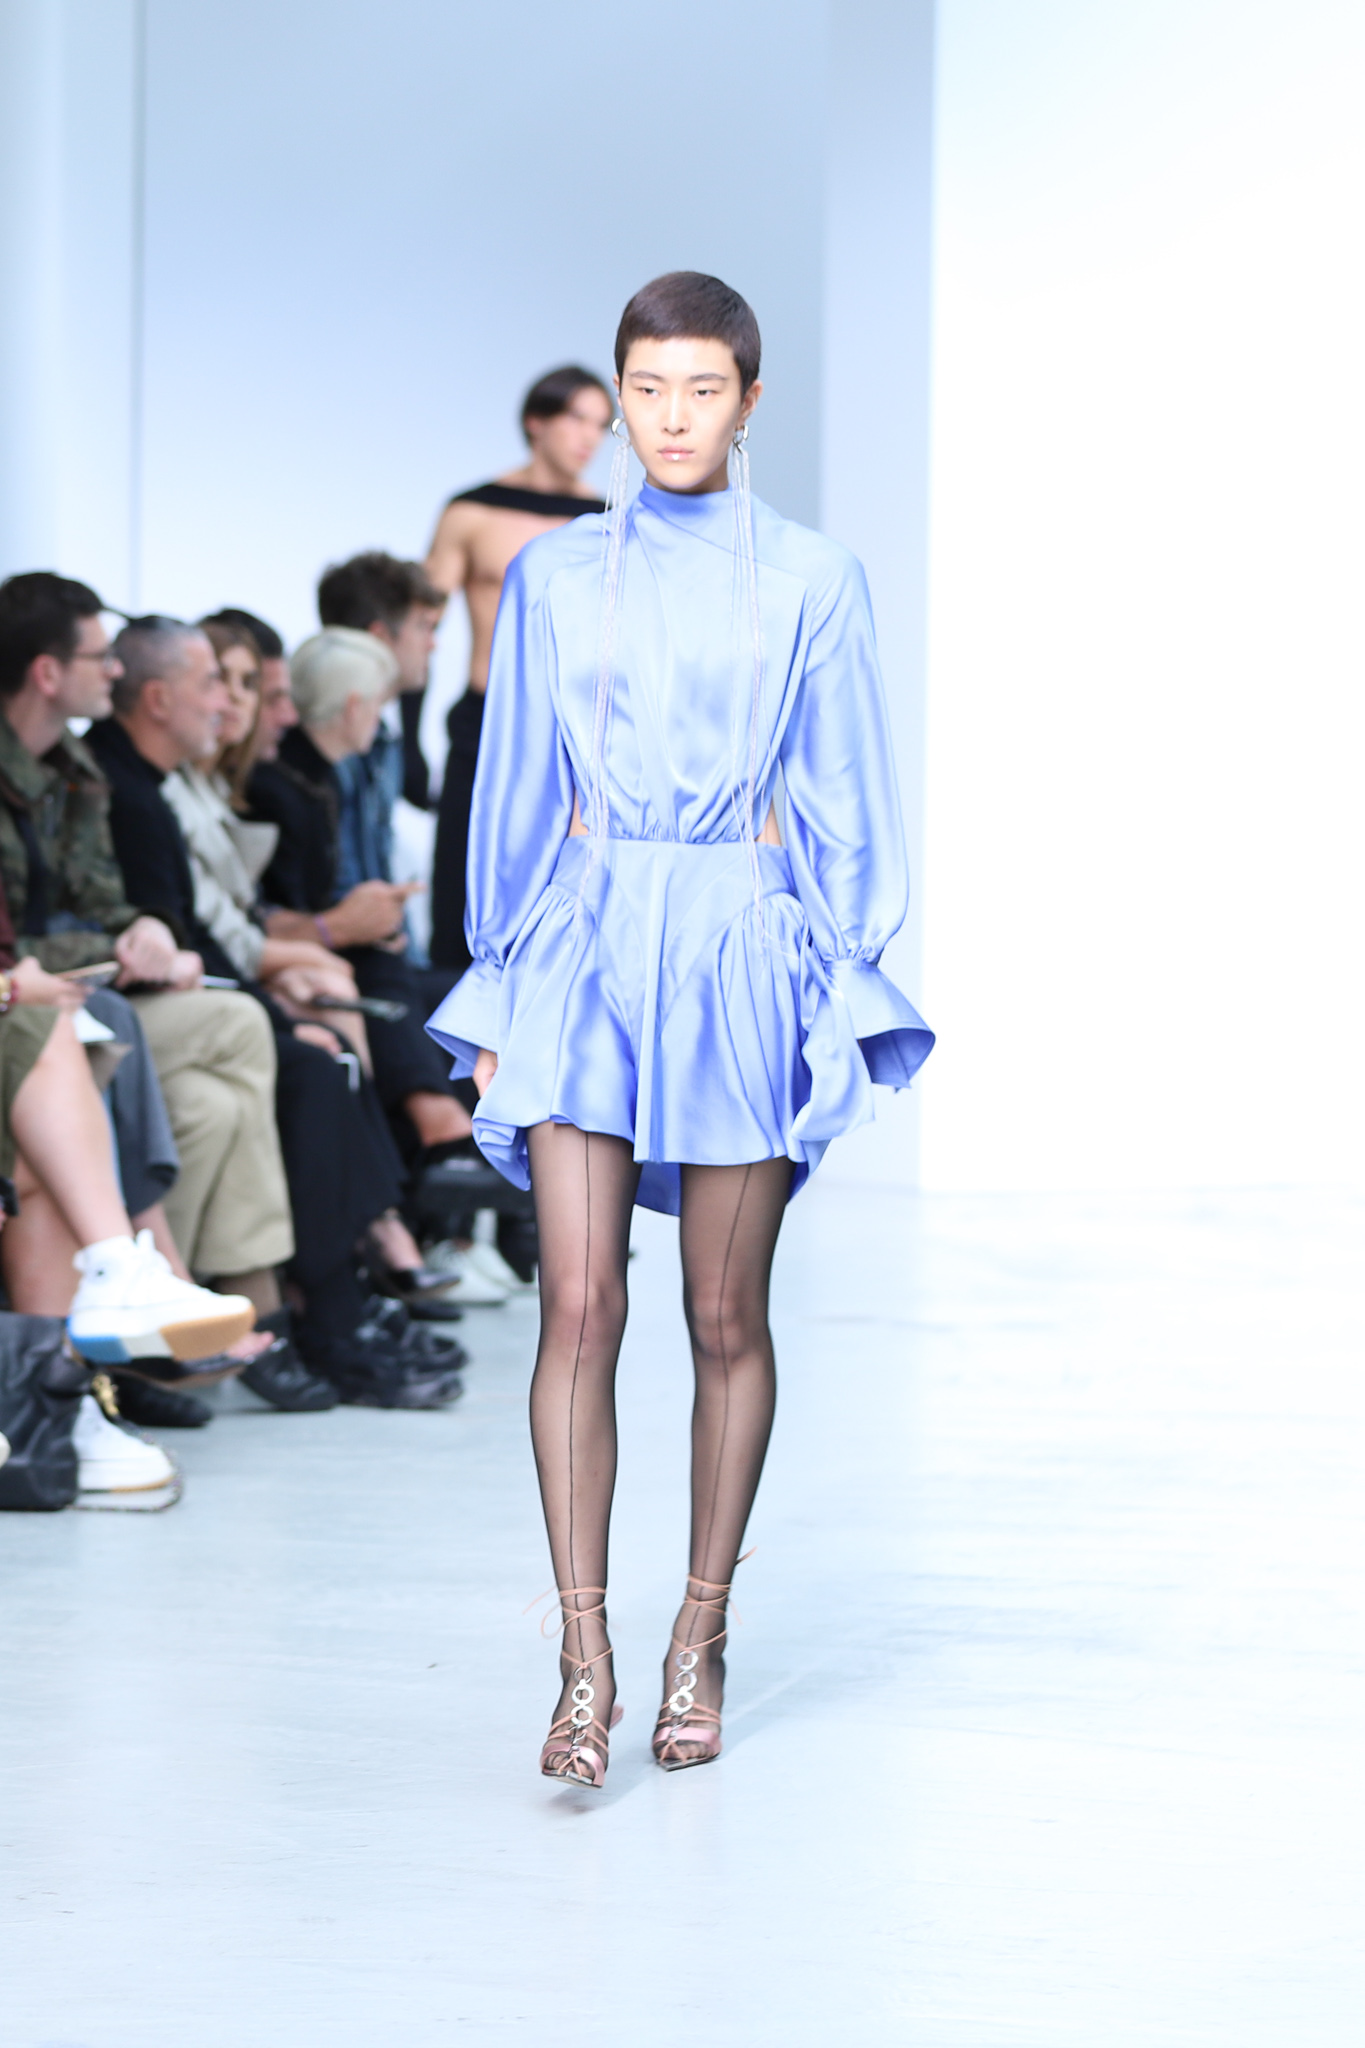 Mugler Runway Oversized Cuff Long Sleeve Ruffle Cut Out Dress in Light Blue Long Earrings Spring 20 RTW